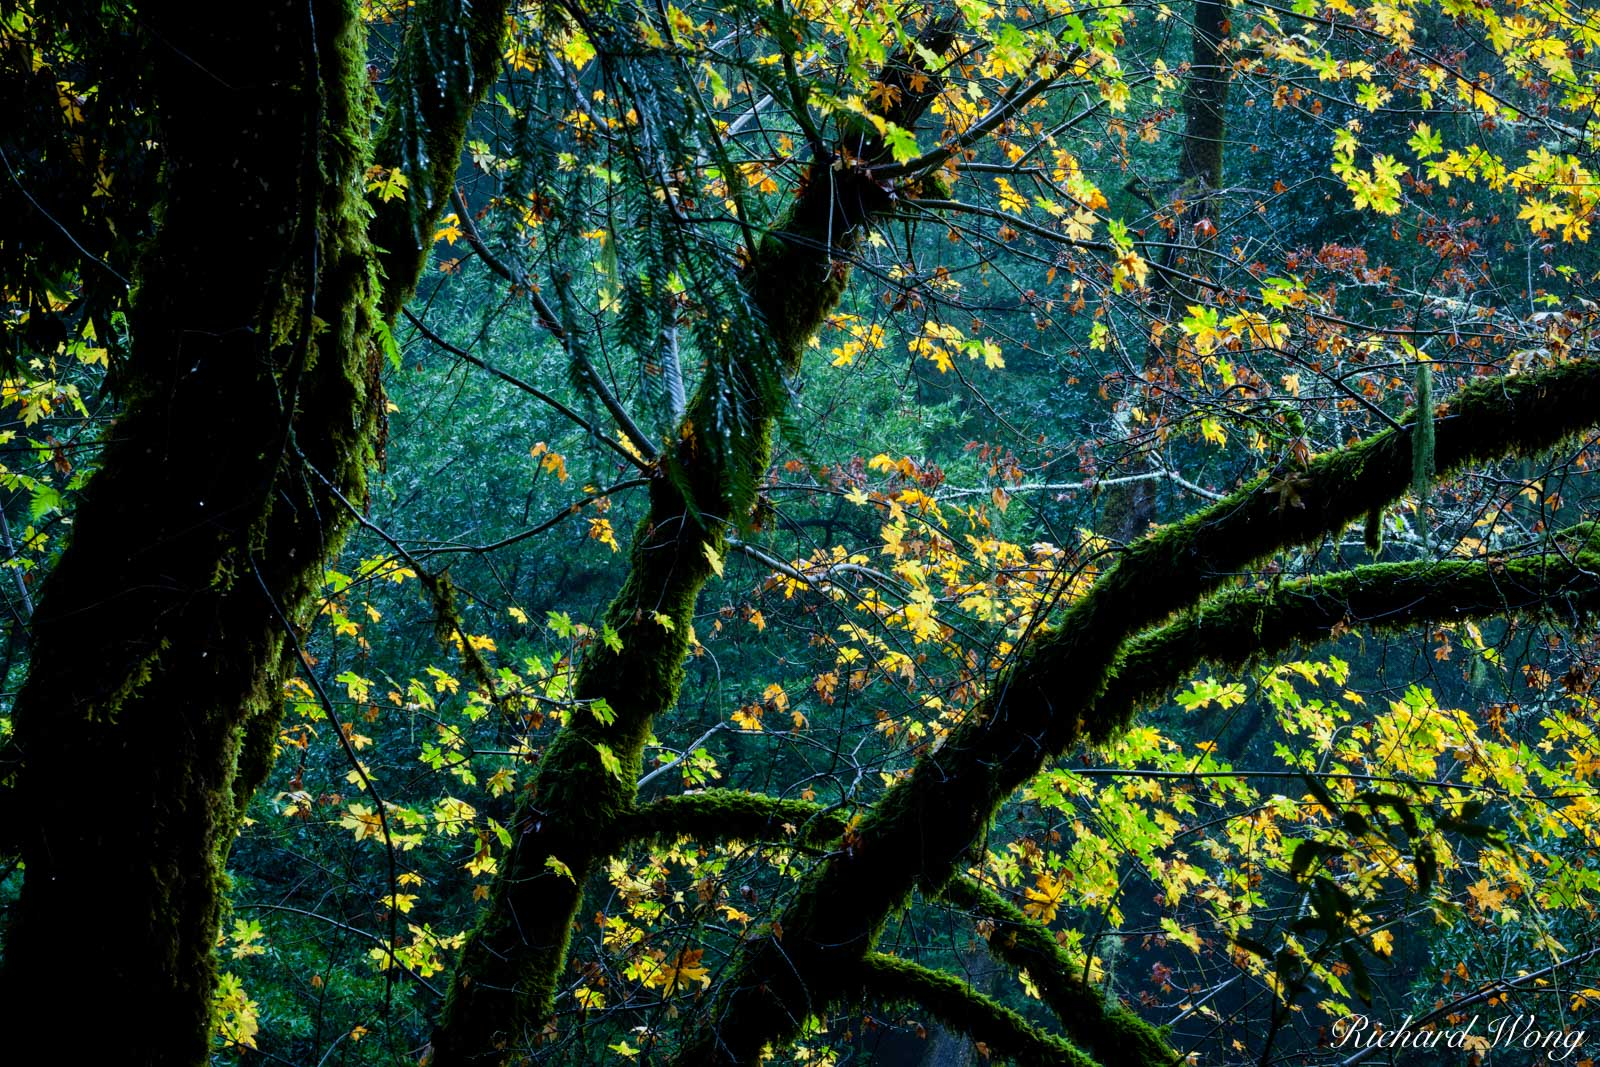 Fall Maples Leaves in Temperate Rainforest at Mount Tamalpais Watershed, Marin County, California